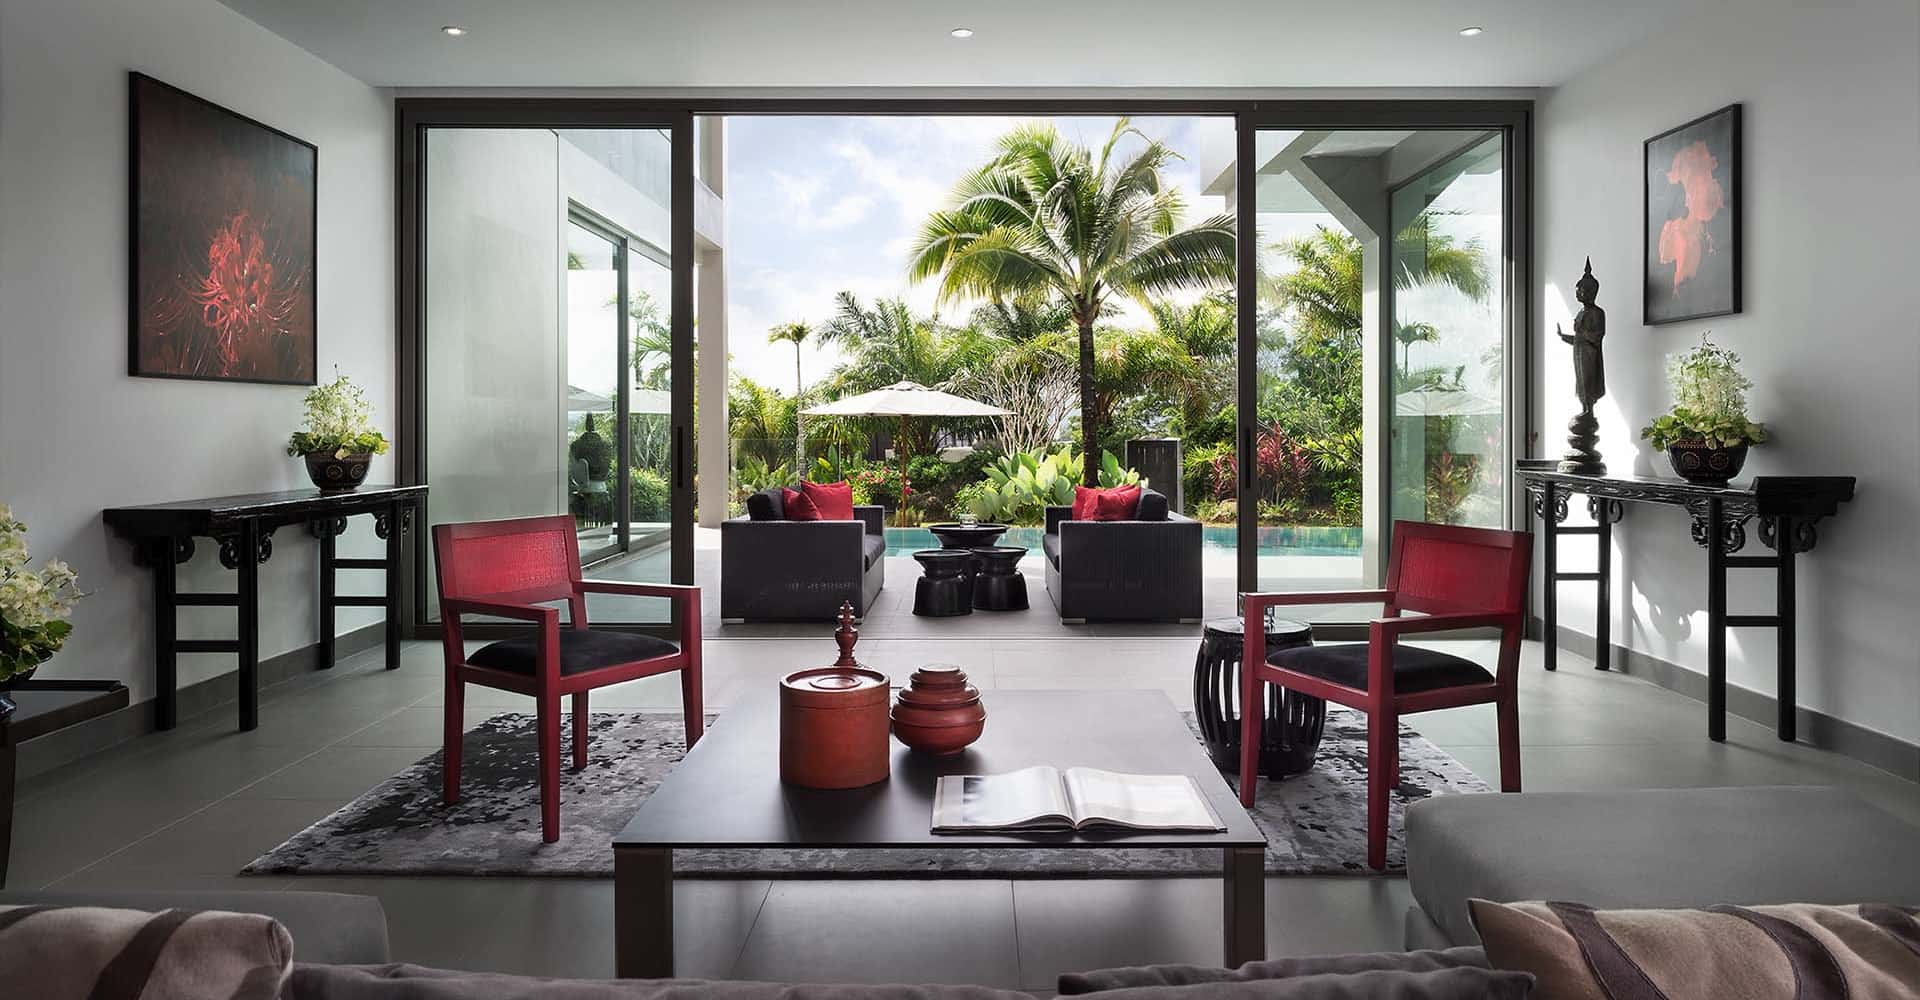 Contact - The Pavilions Residences - Phuket